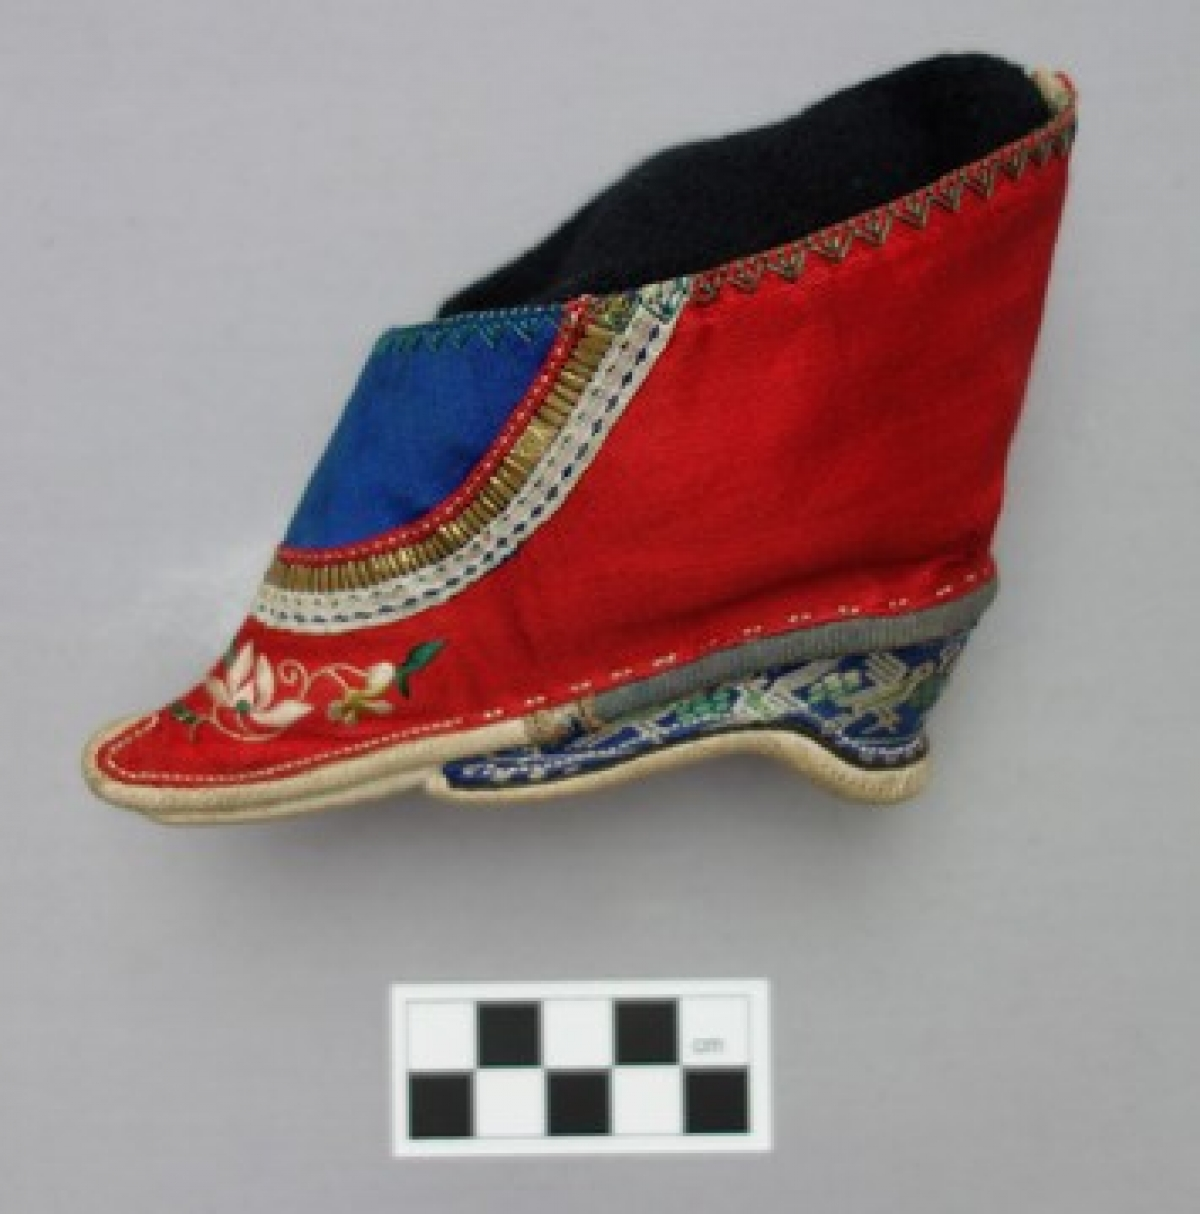 Early 20th century lotus shoe for a bride.